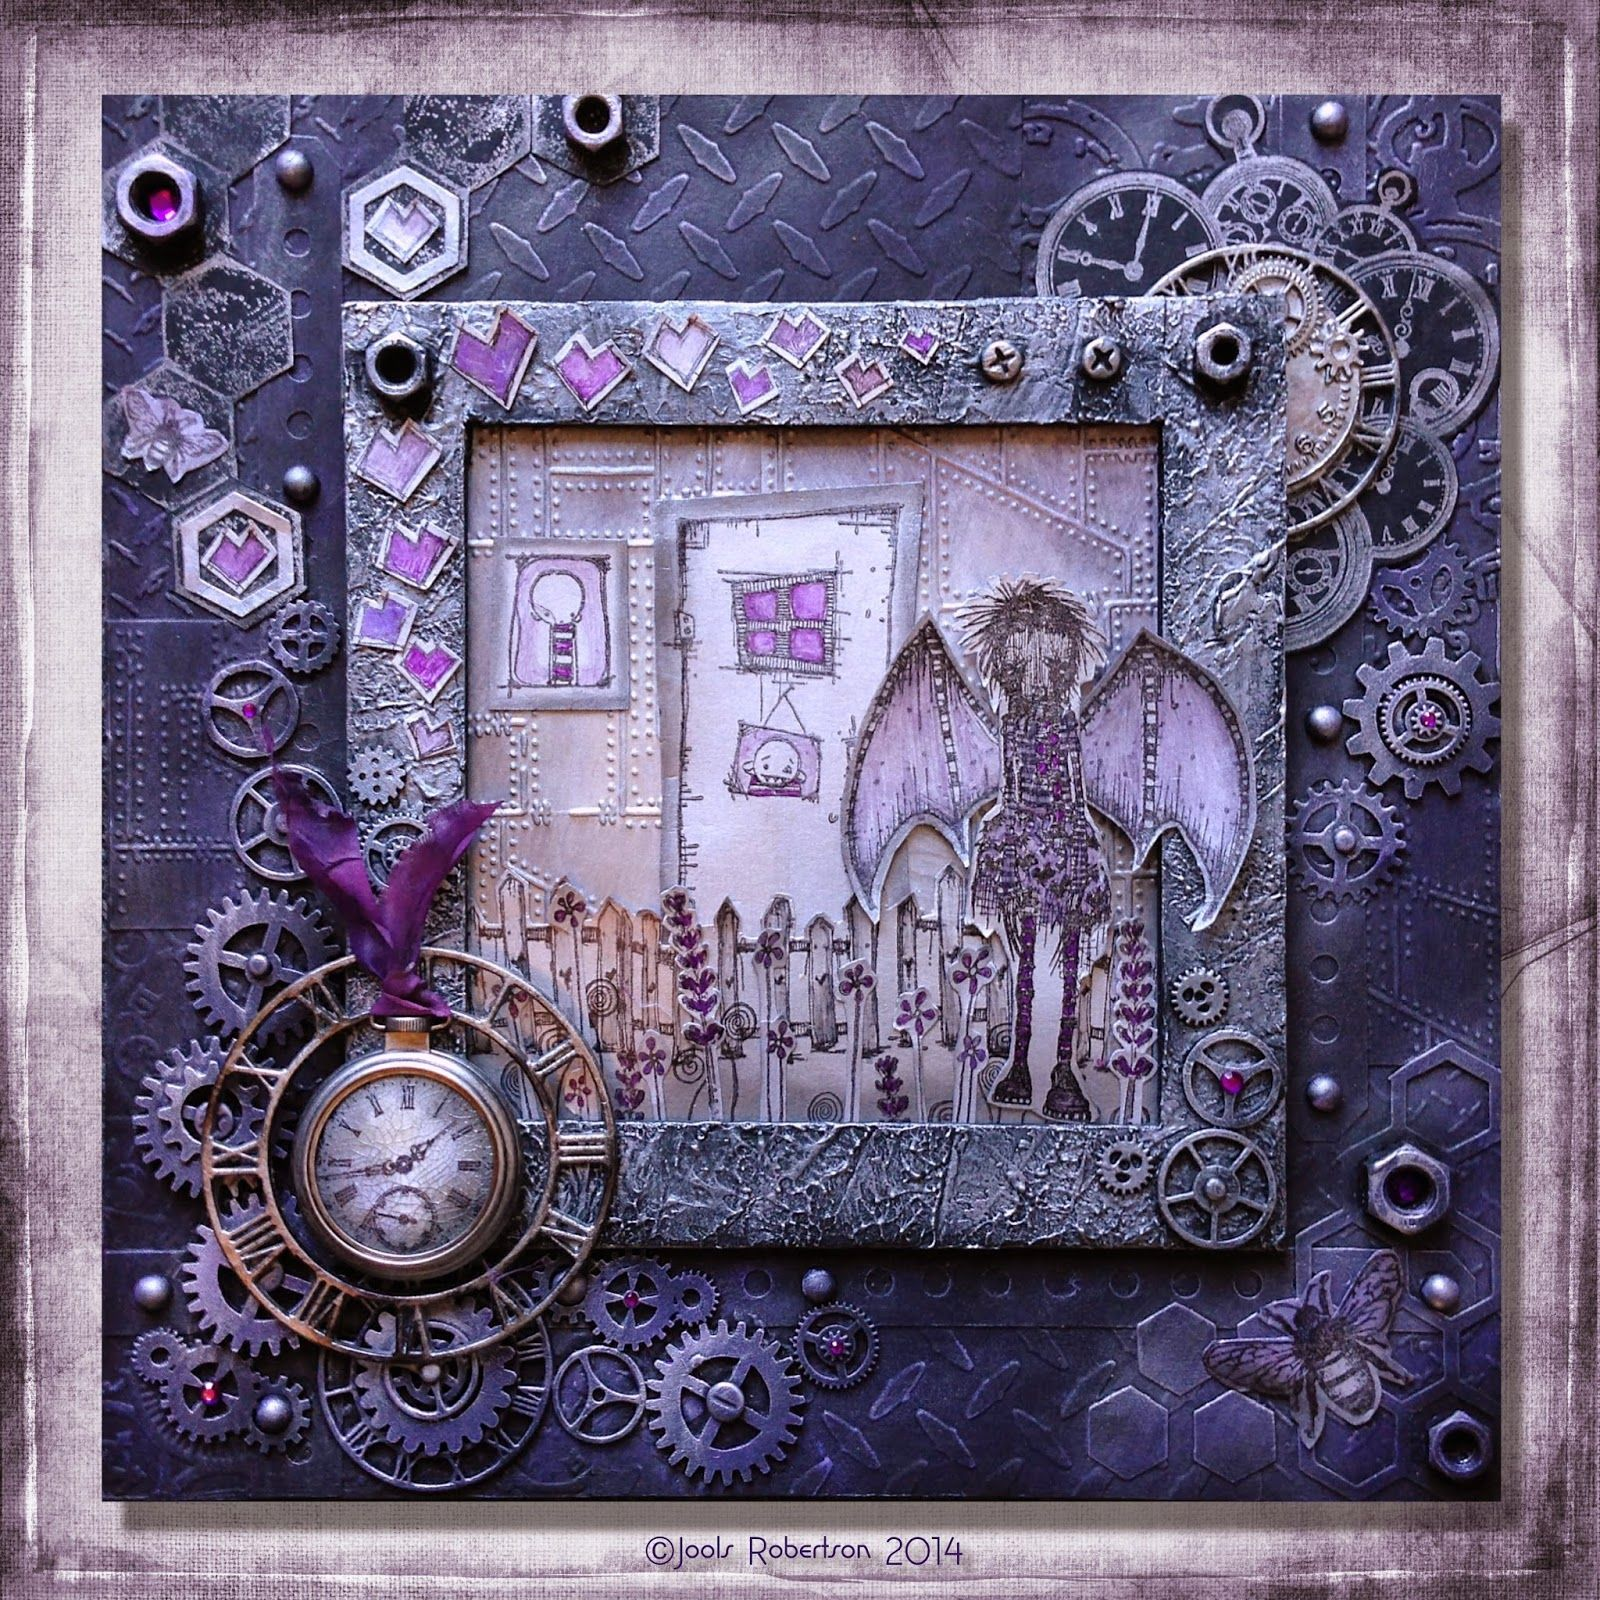 Jools Robertson Stampotique Challenge Steampunk Mixed Media